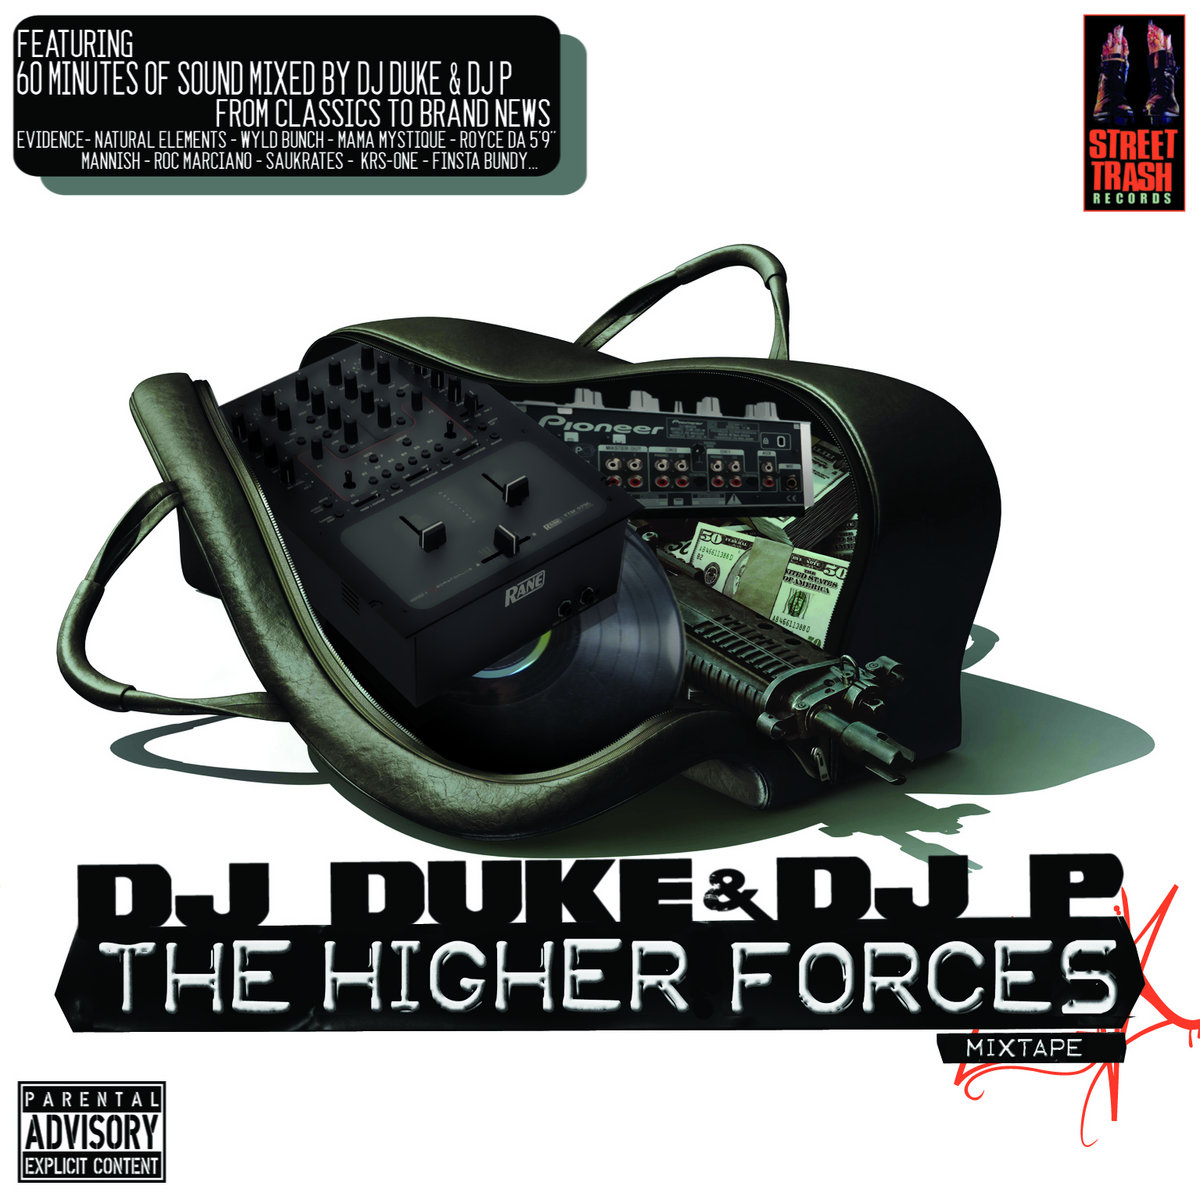 DJ Duke & DJ P - The Higher Forces Mixtape | DJ DUKE